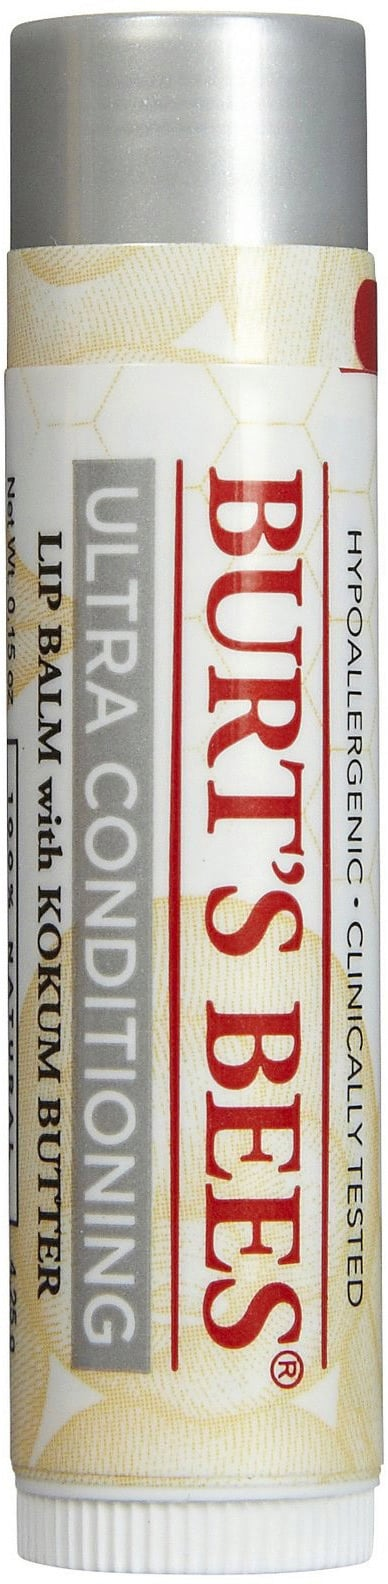 Burt's Bees Ultra Conditioning Lip Balm - 4.25g von Burt's Bees